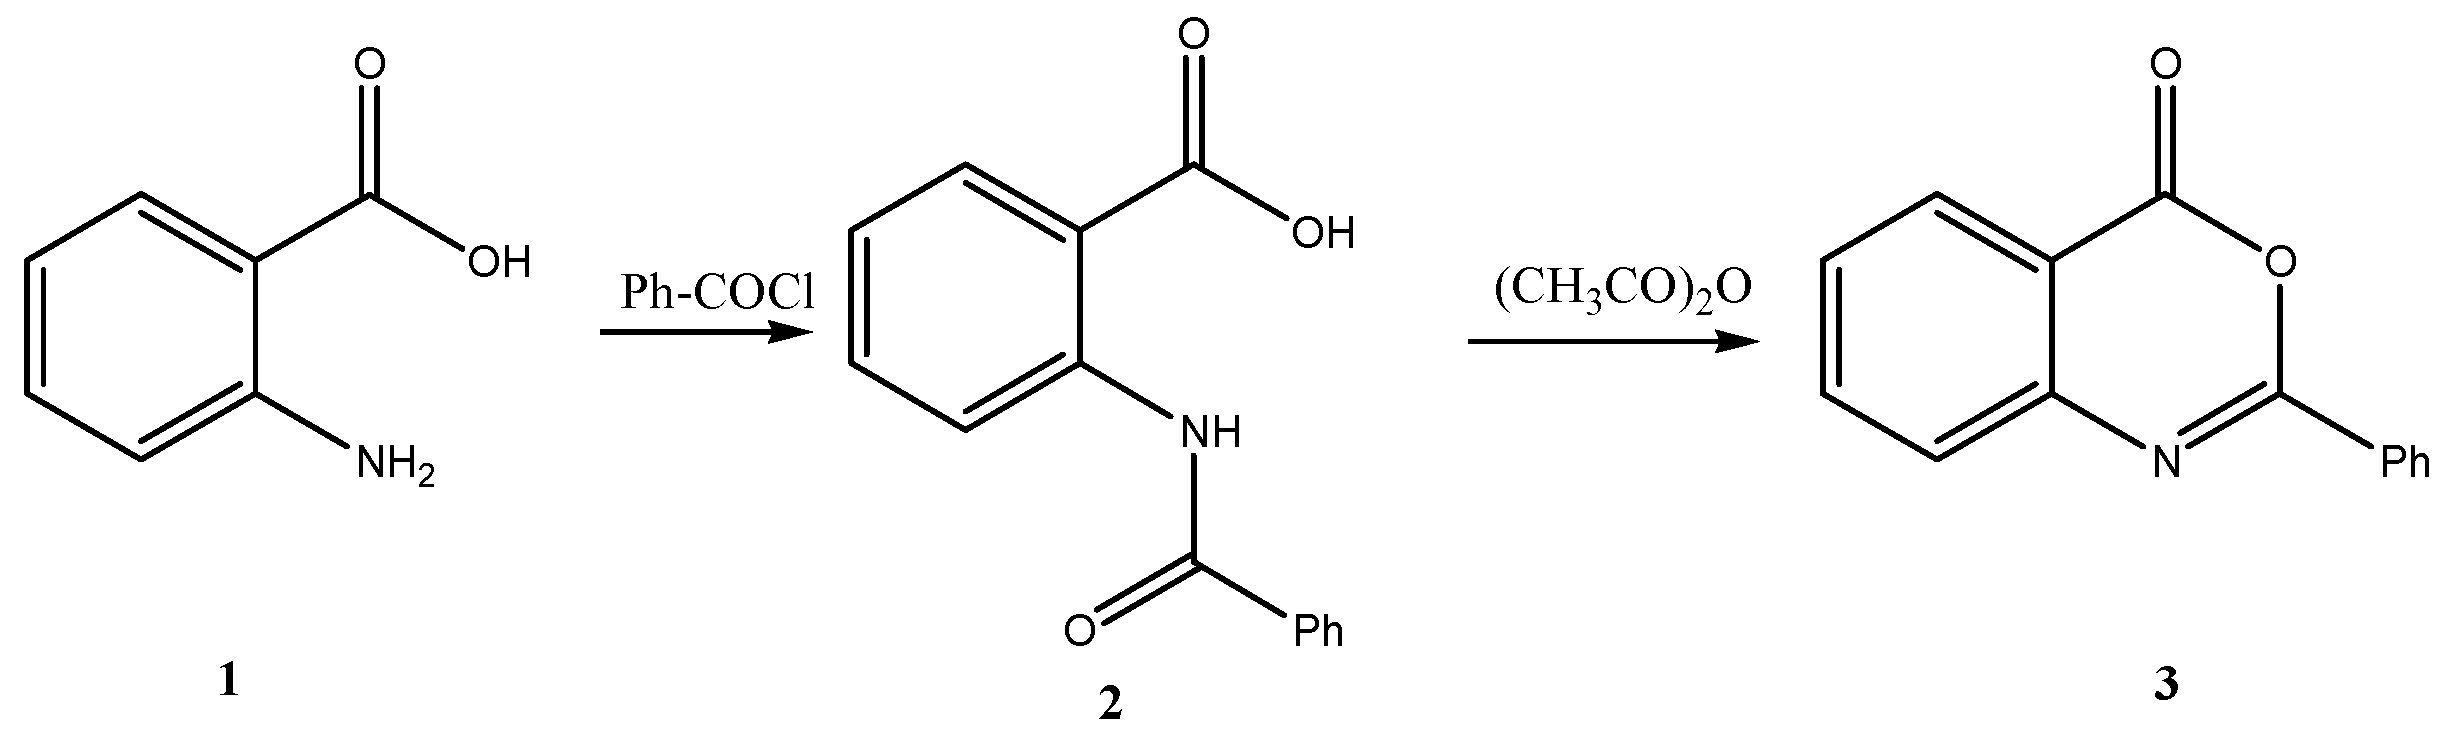 Molecules 23 00008 sch001